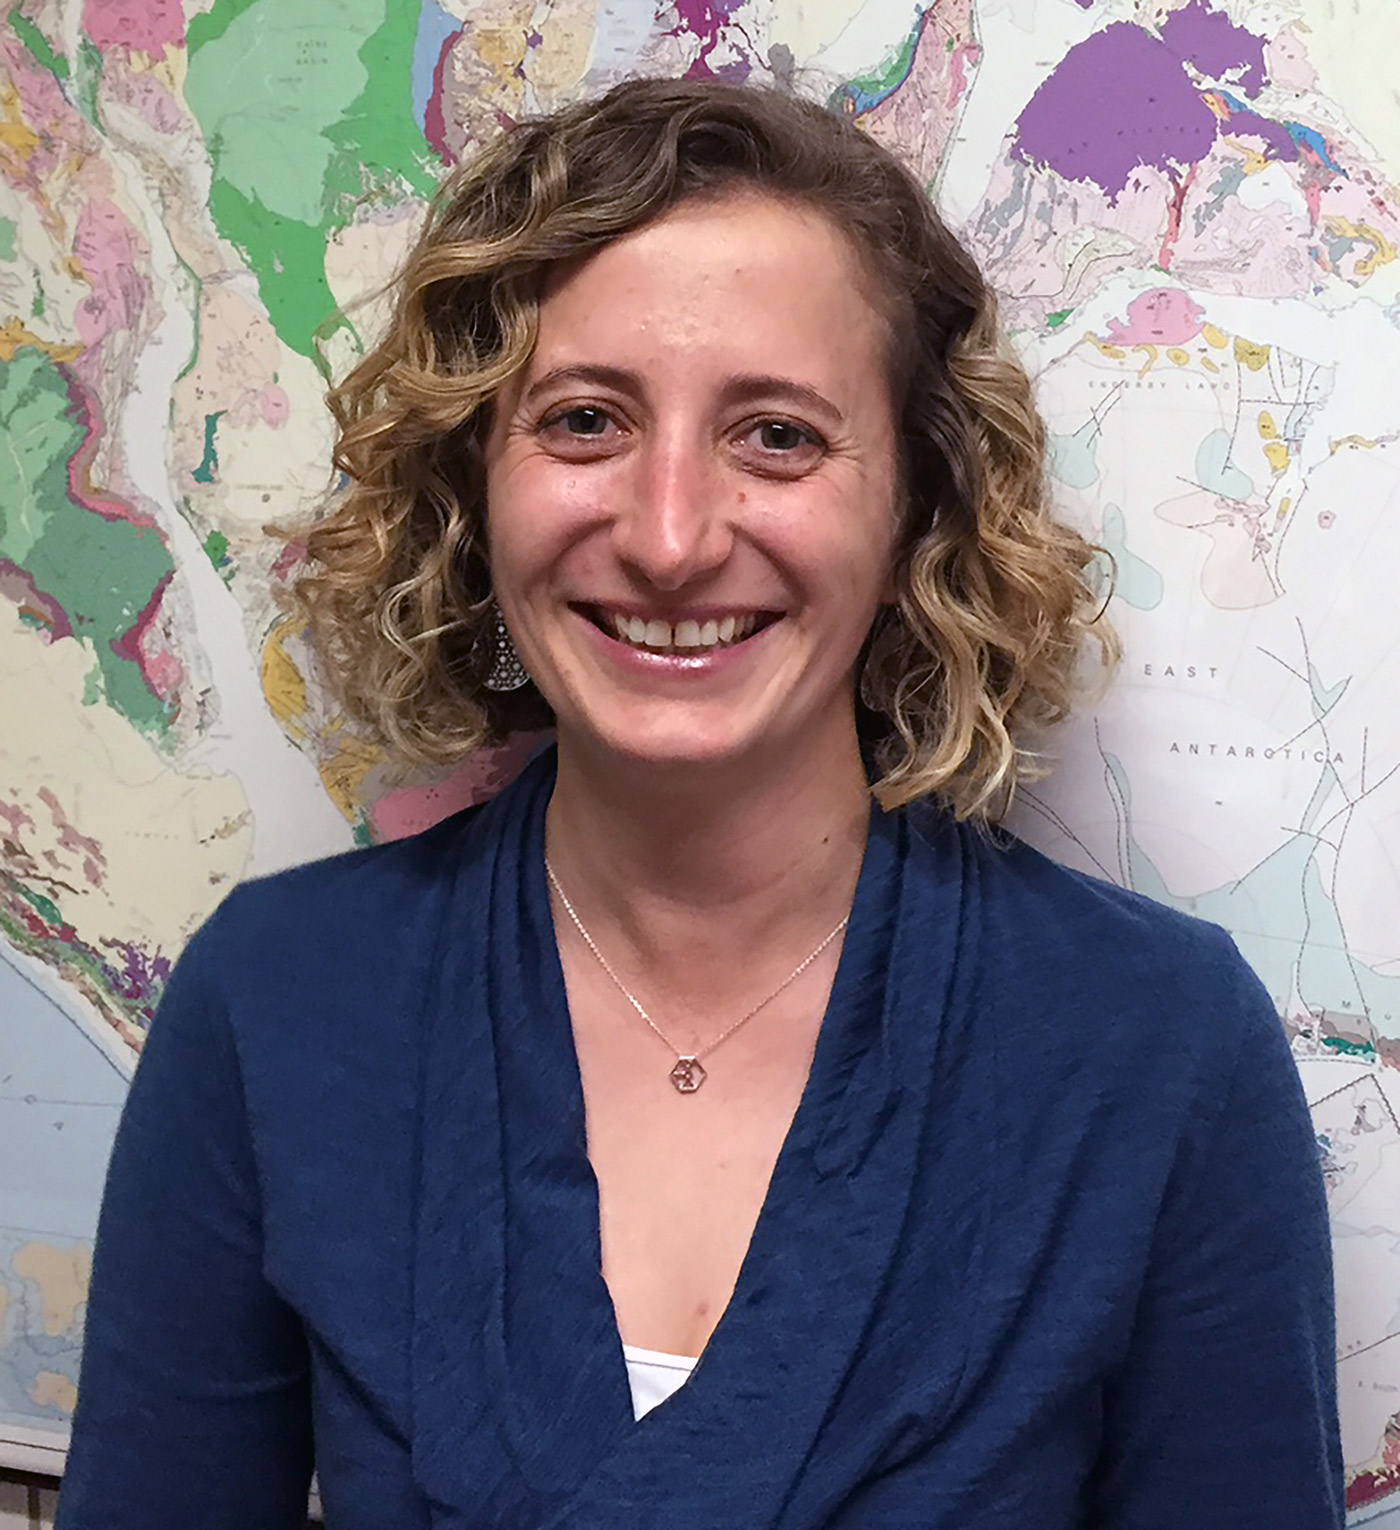 Kate Swanger  is an Associate Professor in the Environmental, Earth and Atmospheric Sciences Department at UMass Lowell.